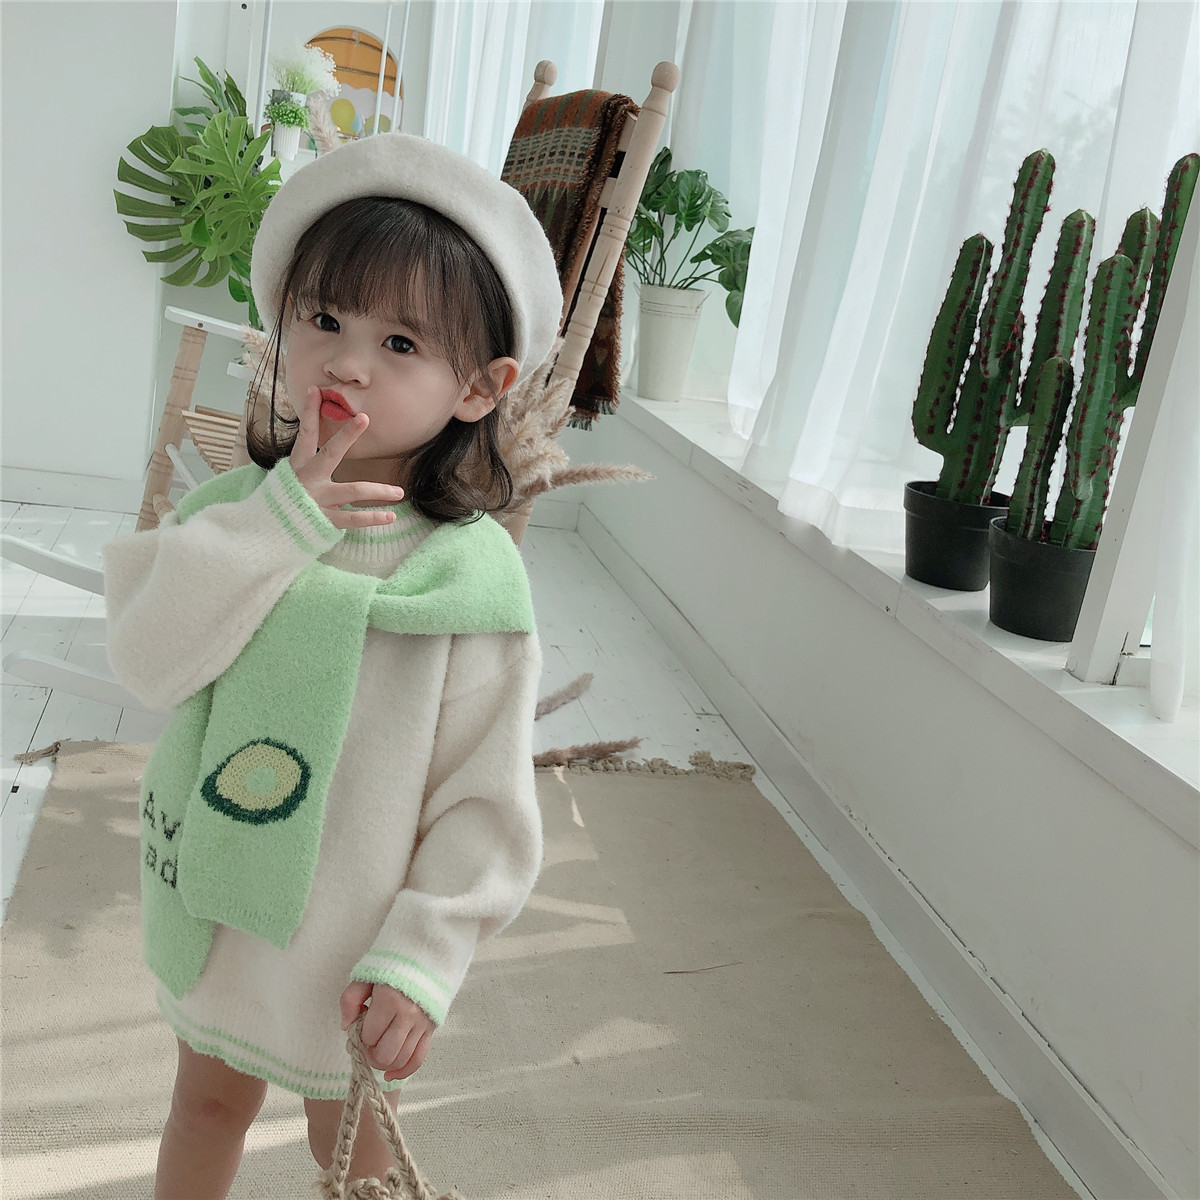 Fall and Winter 2019 New Girl Fruit Scarf Sweater Dresses Toddler Kids Long Sleeve Casual Fashion Pullover Chenille Clothing